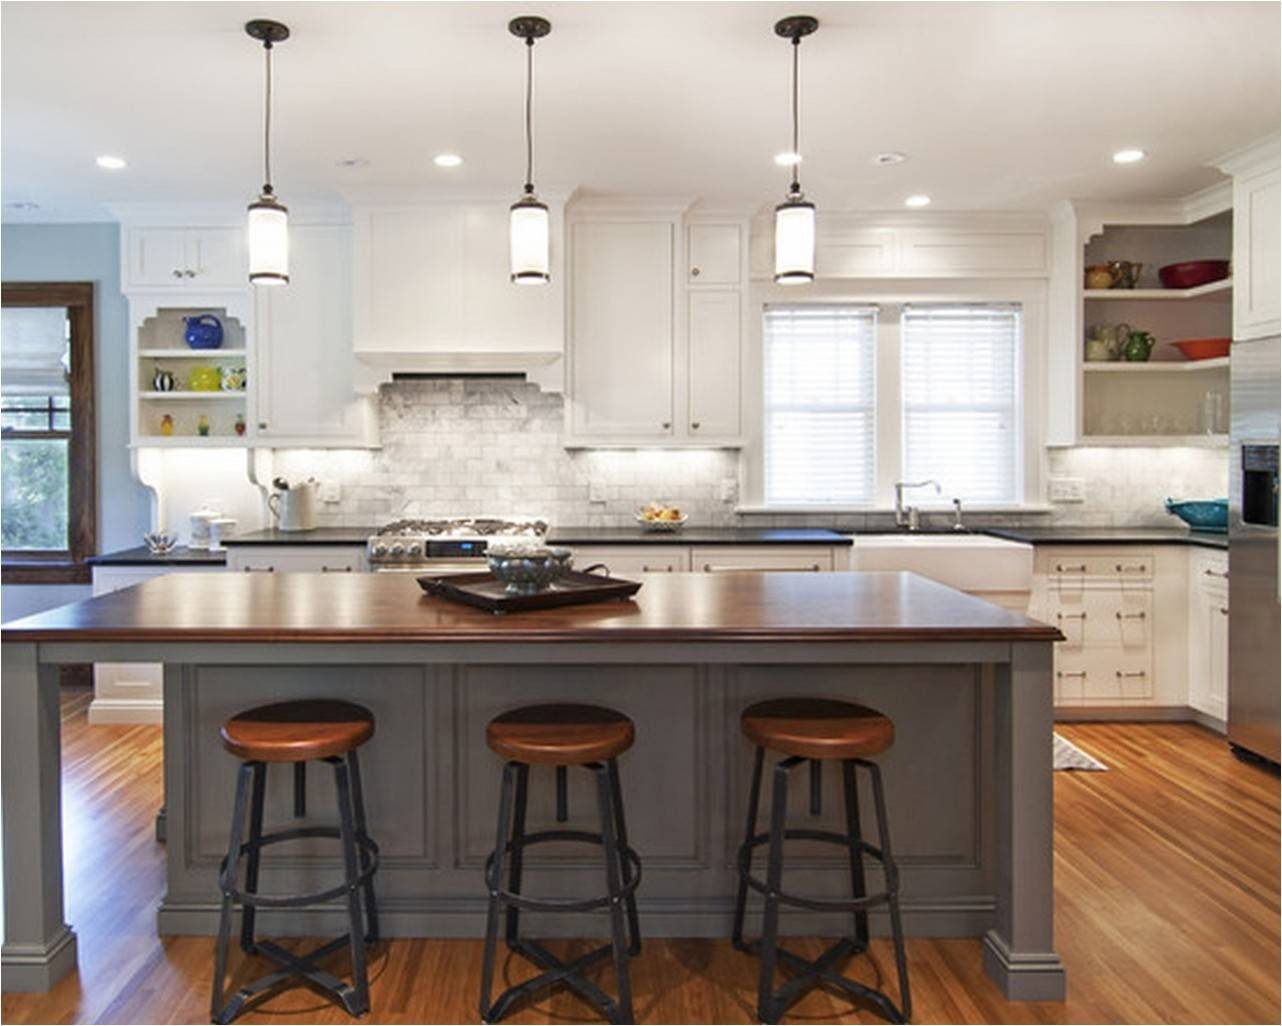 Glass Pendant Lights For Kitchen Island Rustic Kitchen Island In Pertaining To Kitchen Pendant Lighting (View 9 of 15)